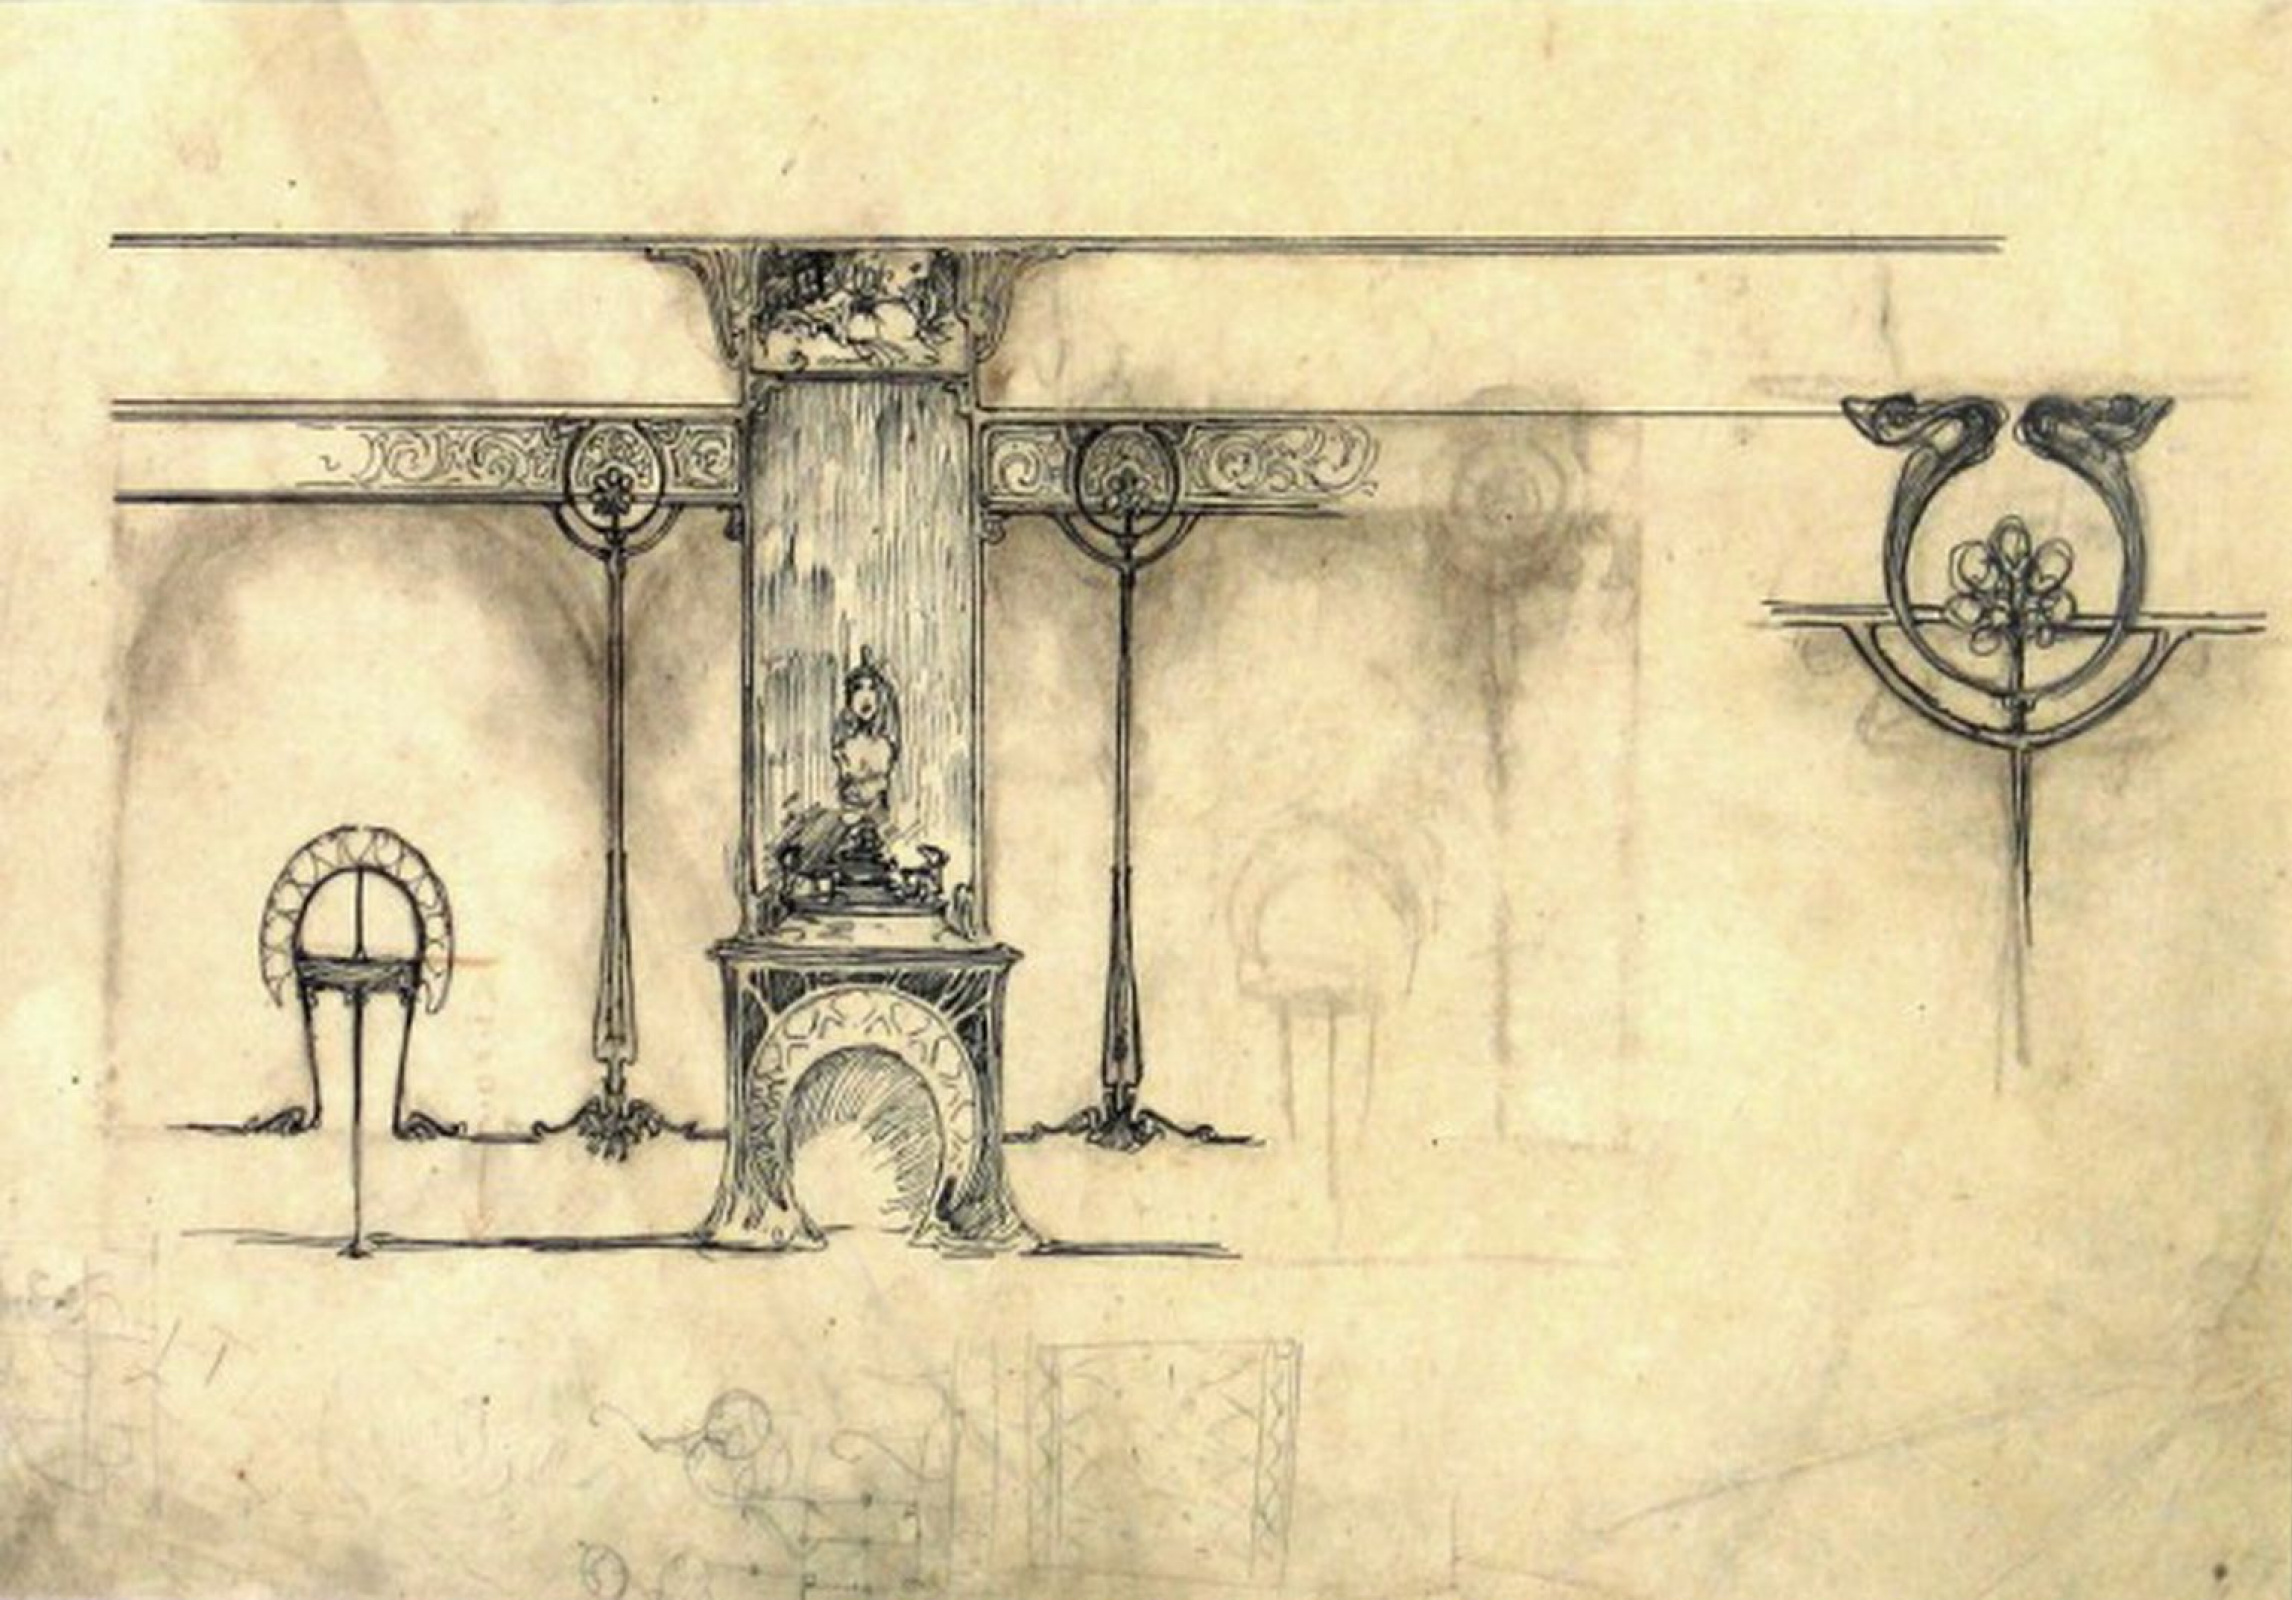 Alphonse Mucha. The interior of the jewelry house of Georges Fouquet. Sketch of the fireplace with a sculpture, a mirror, a showcase, and details of ornament for the walls